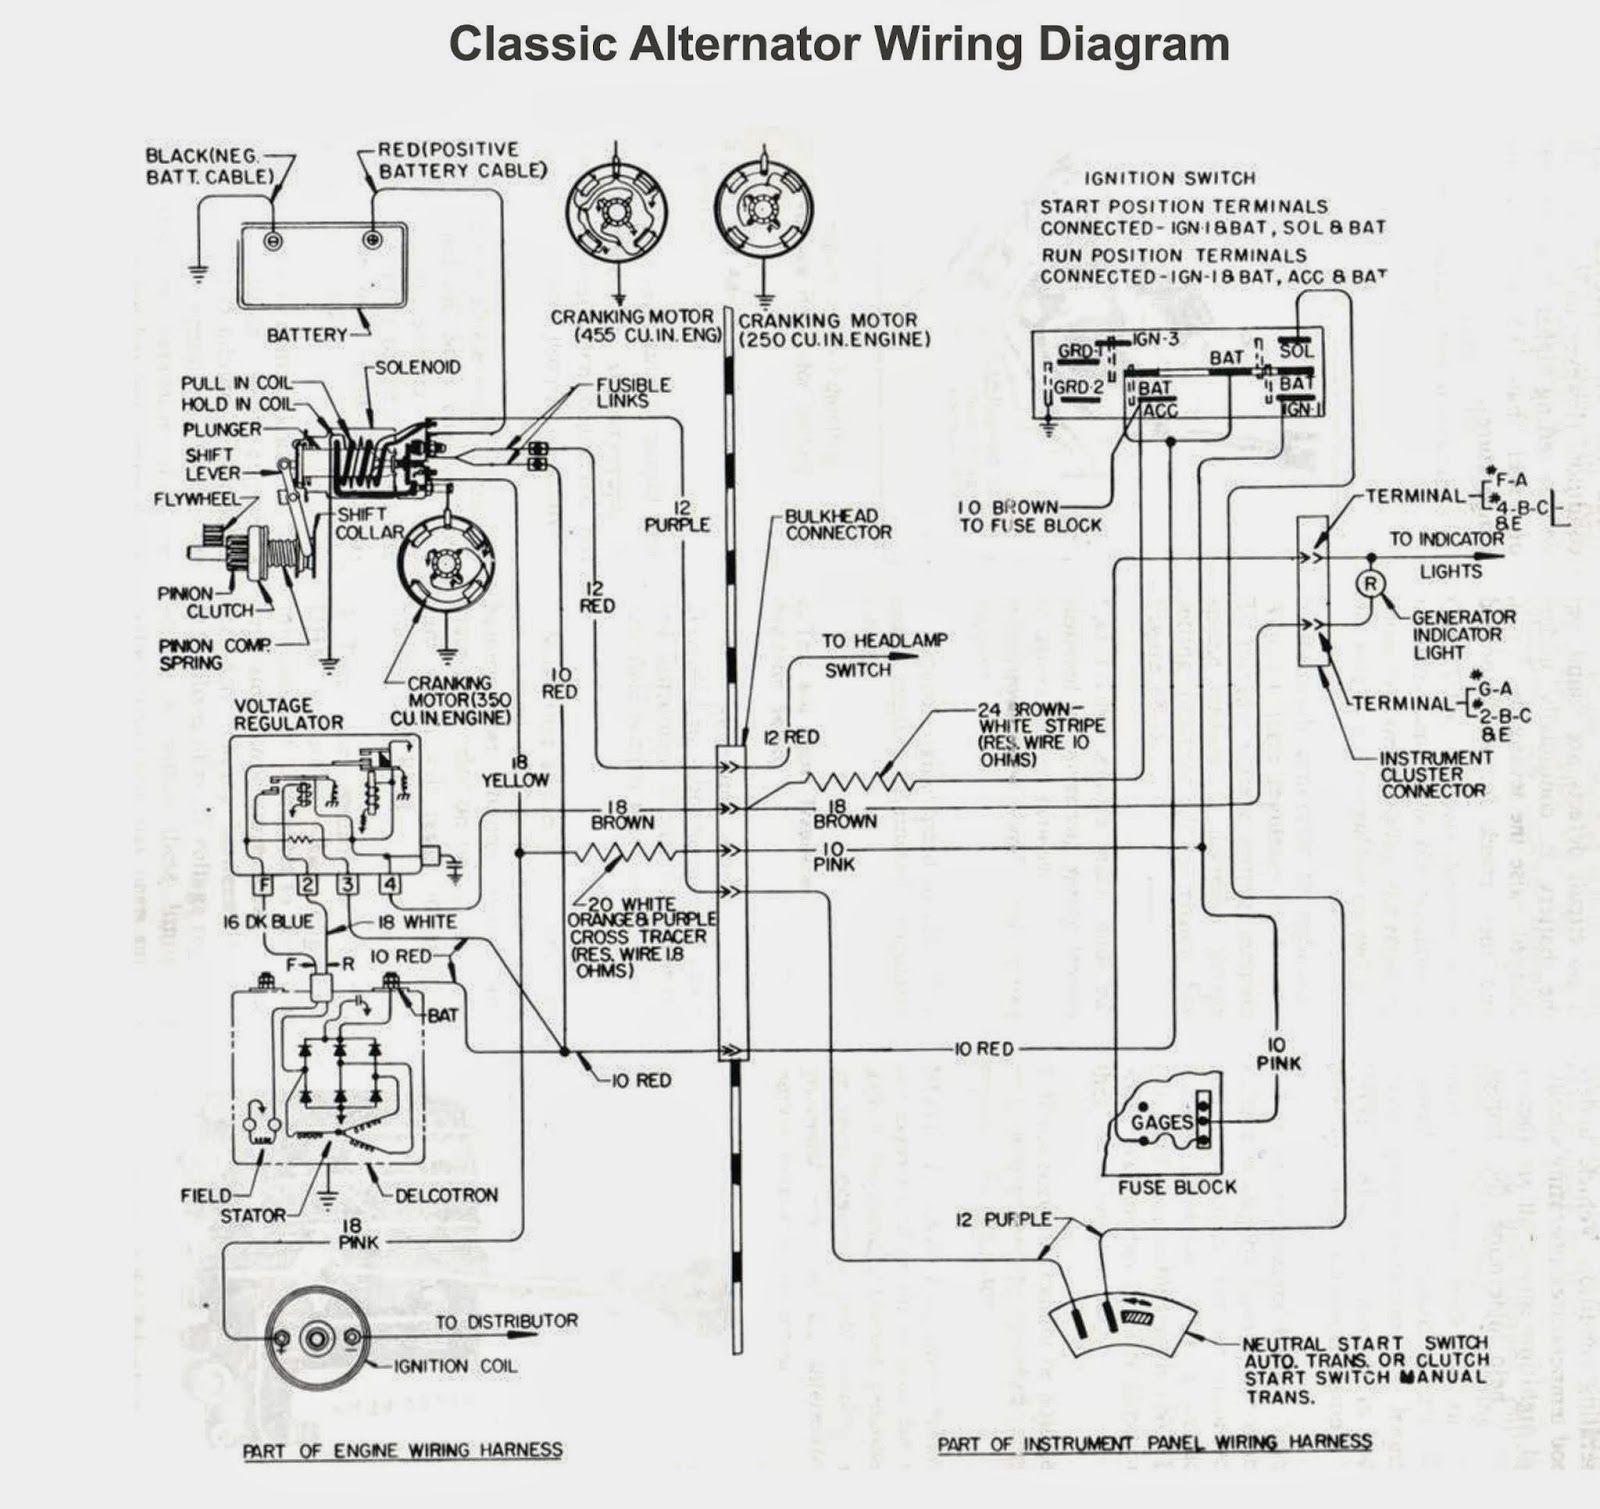 old car alternator wiring diagram electrical winding. Black Bedroom Furniture Sets. Home Design Ideas